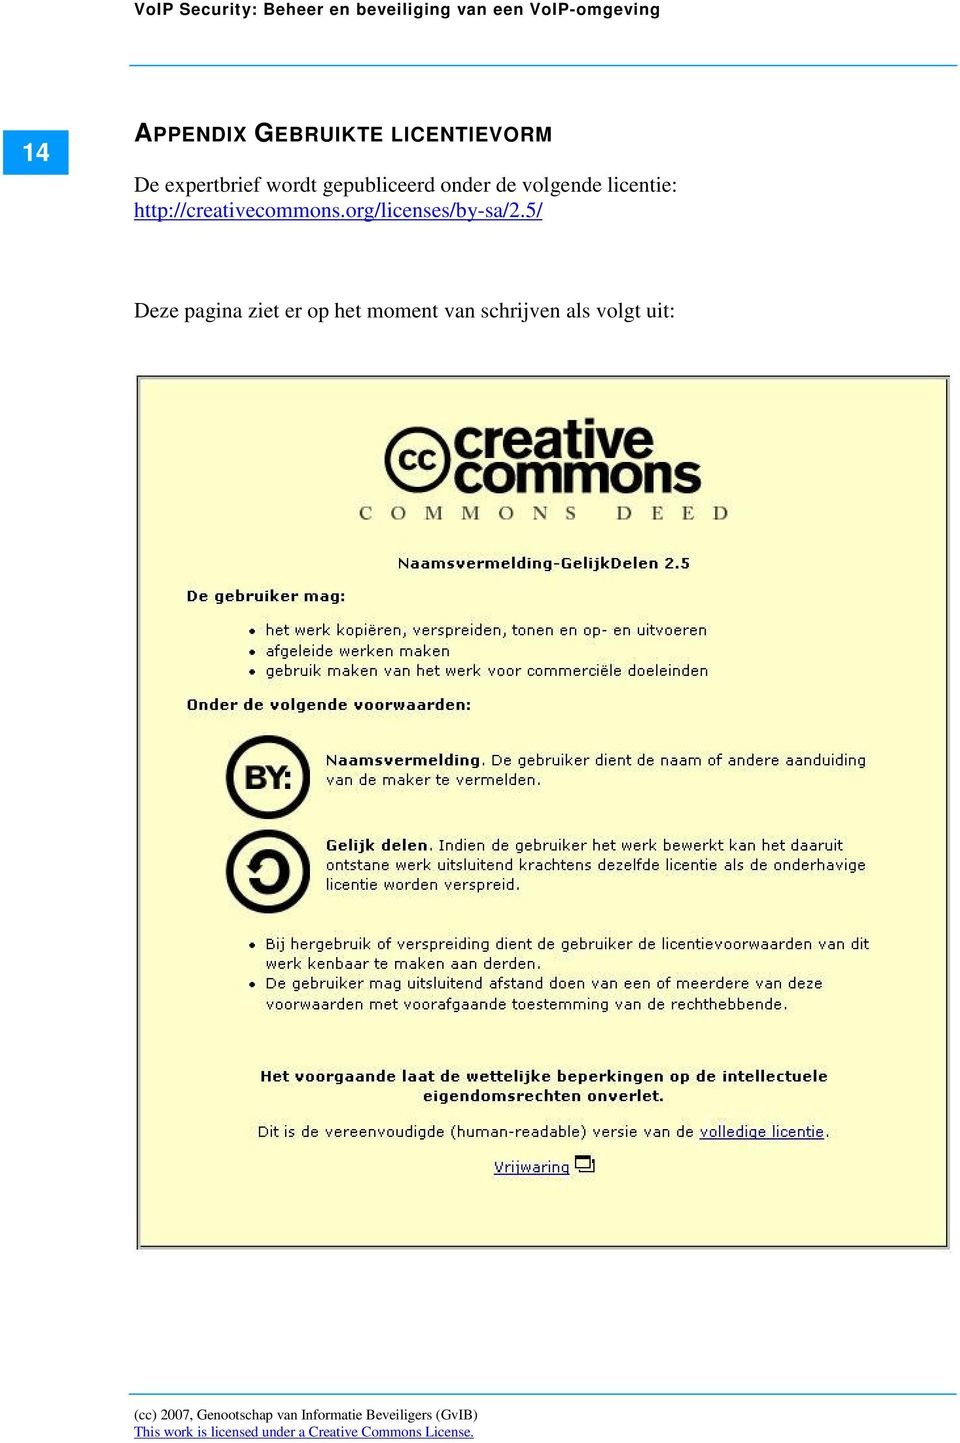 http://creativecommons.org/licenses/by-sa/2.